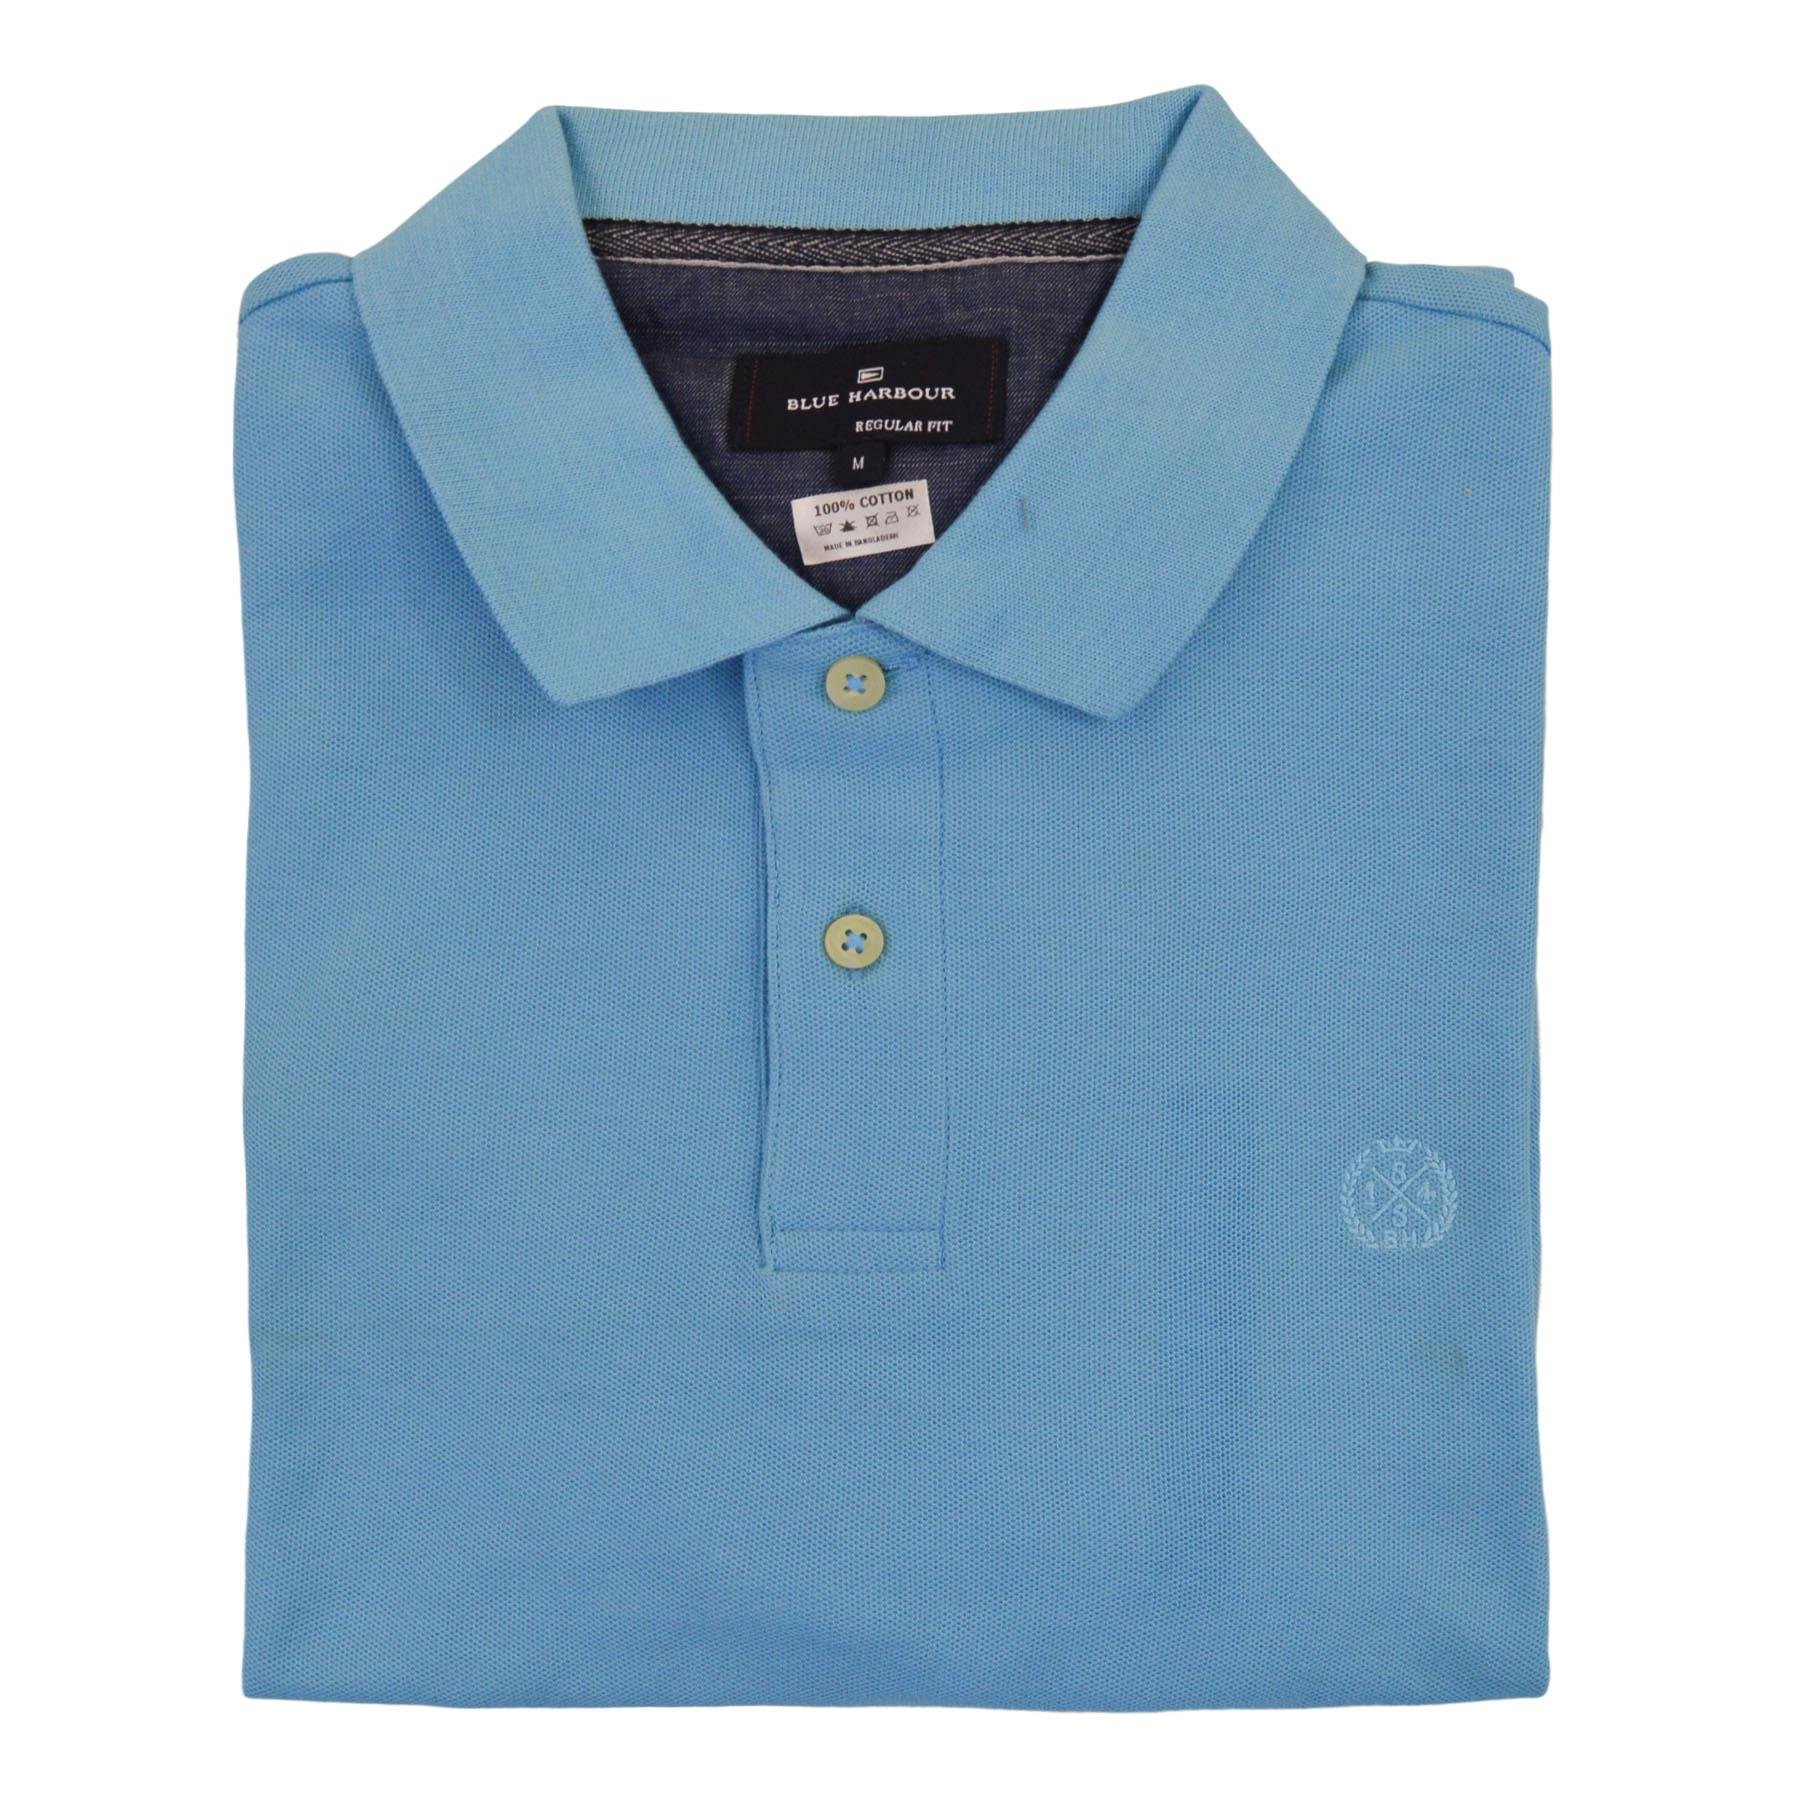 NEW-M-amp-S-Blue-Harbour-Mens-Polo-Shirt-Contrast-Stripe-Collar-Embroidered-Logo thumbnail 11